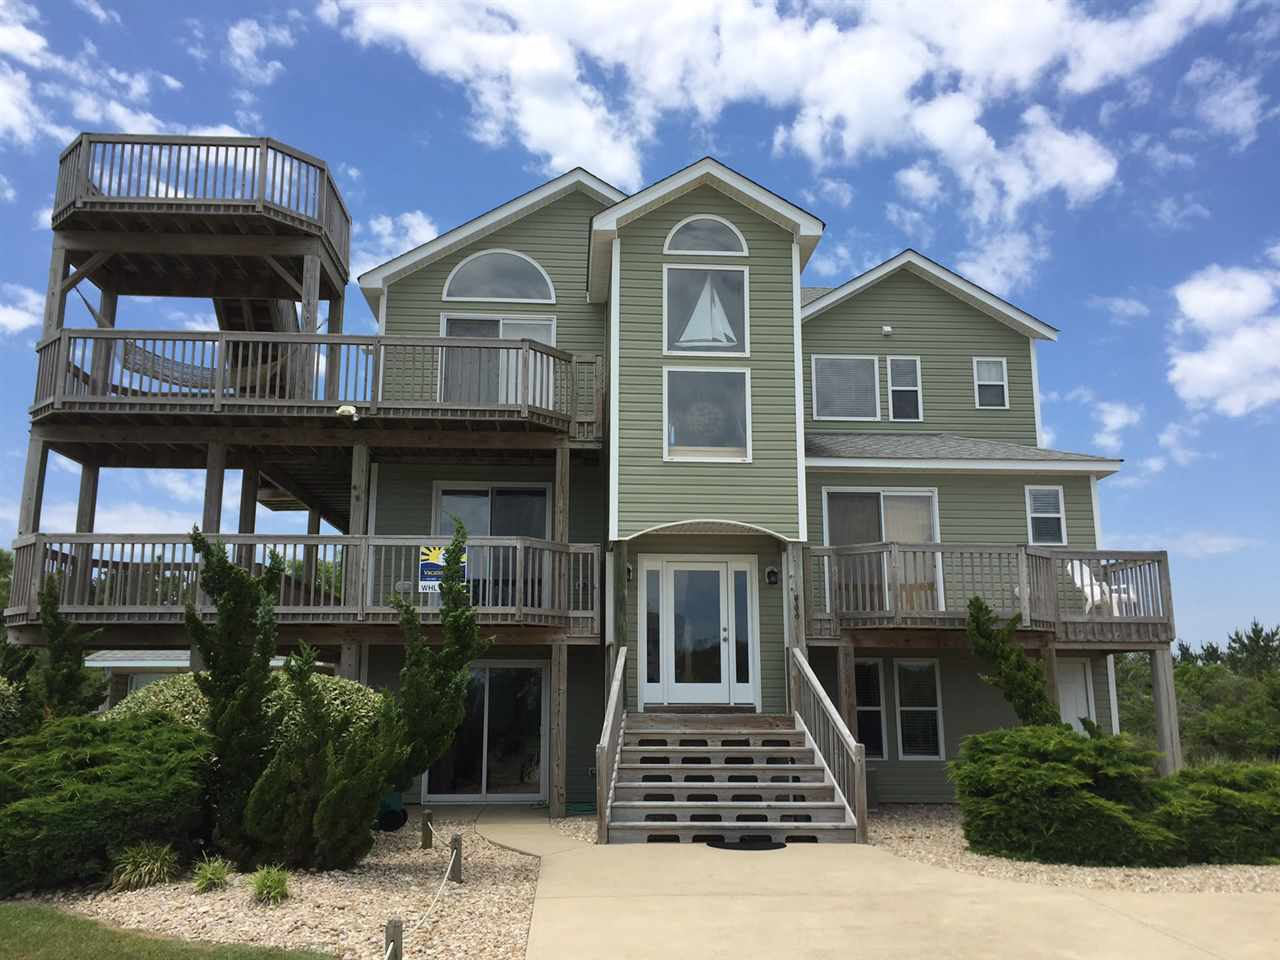 966 Whalehead Drive, Corolla, NC 27927, 8 Bedrooms Bedrooms, ,8 BathroomsBathrooms,Residential,For sale,Whalehead Drive,96666